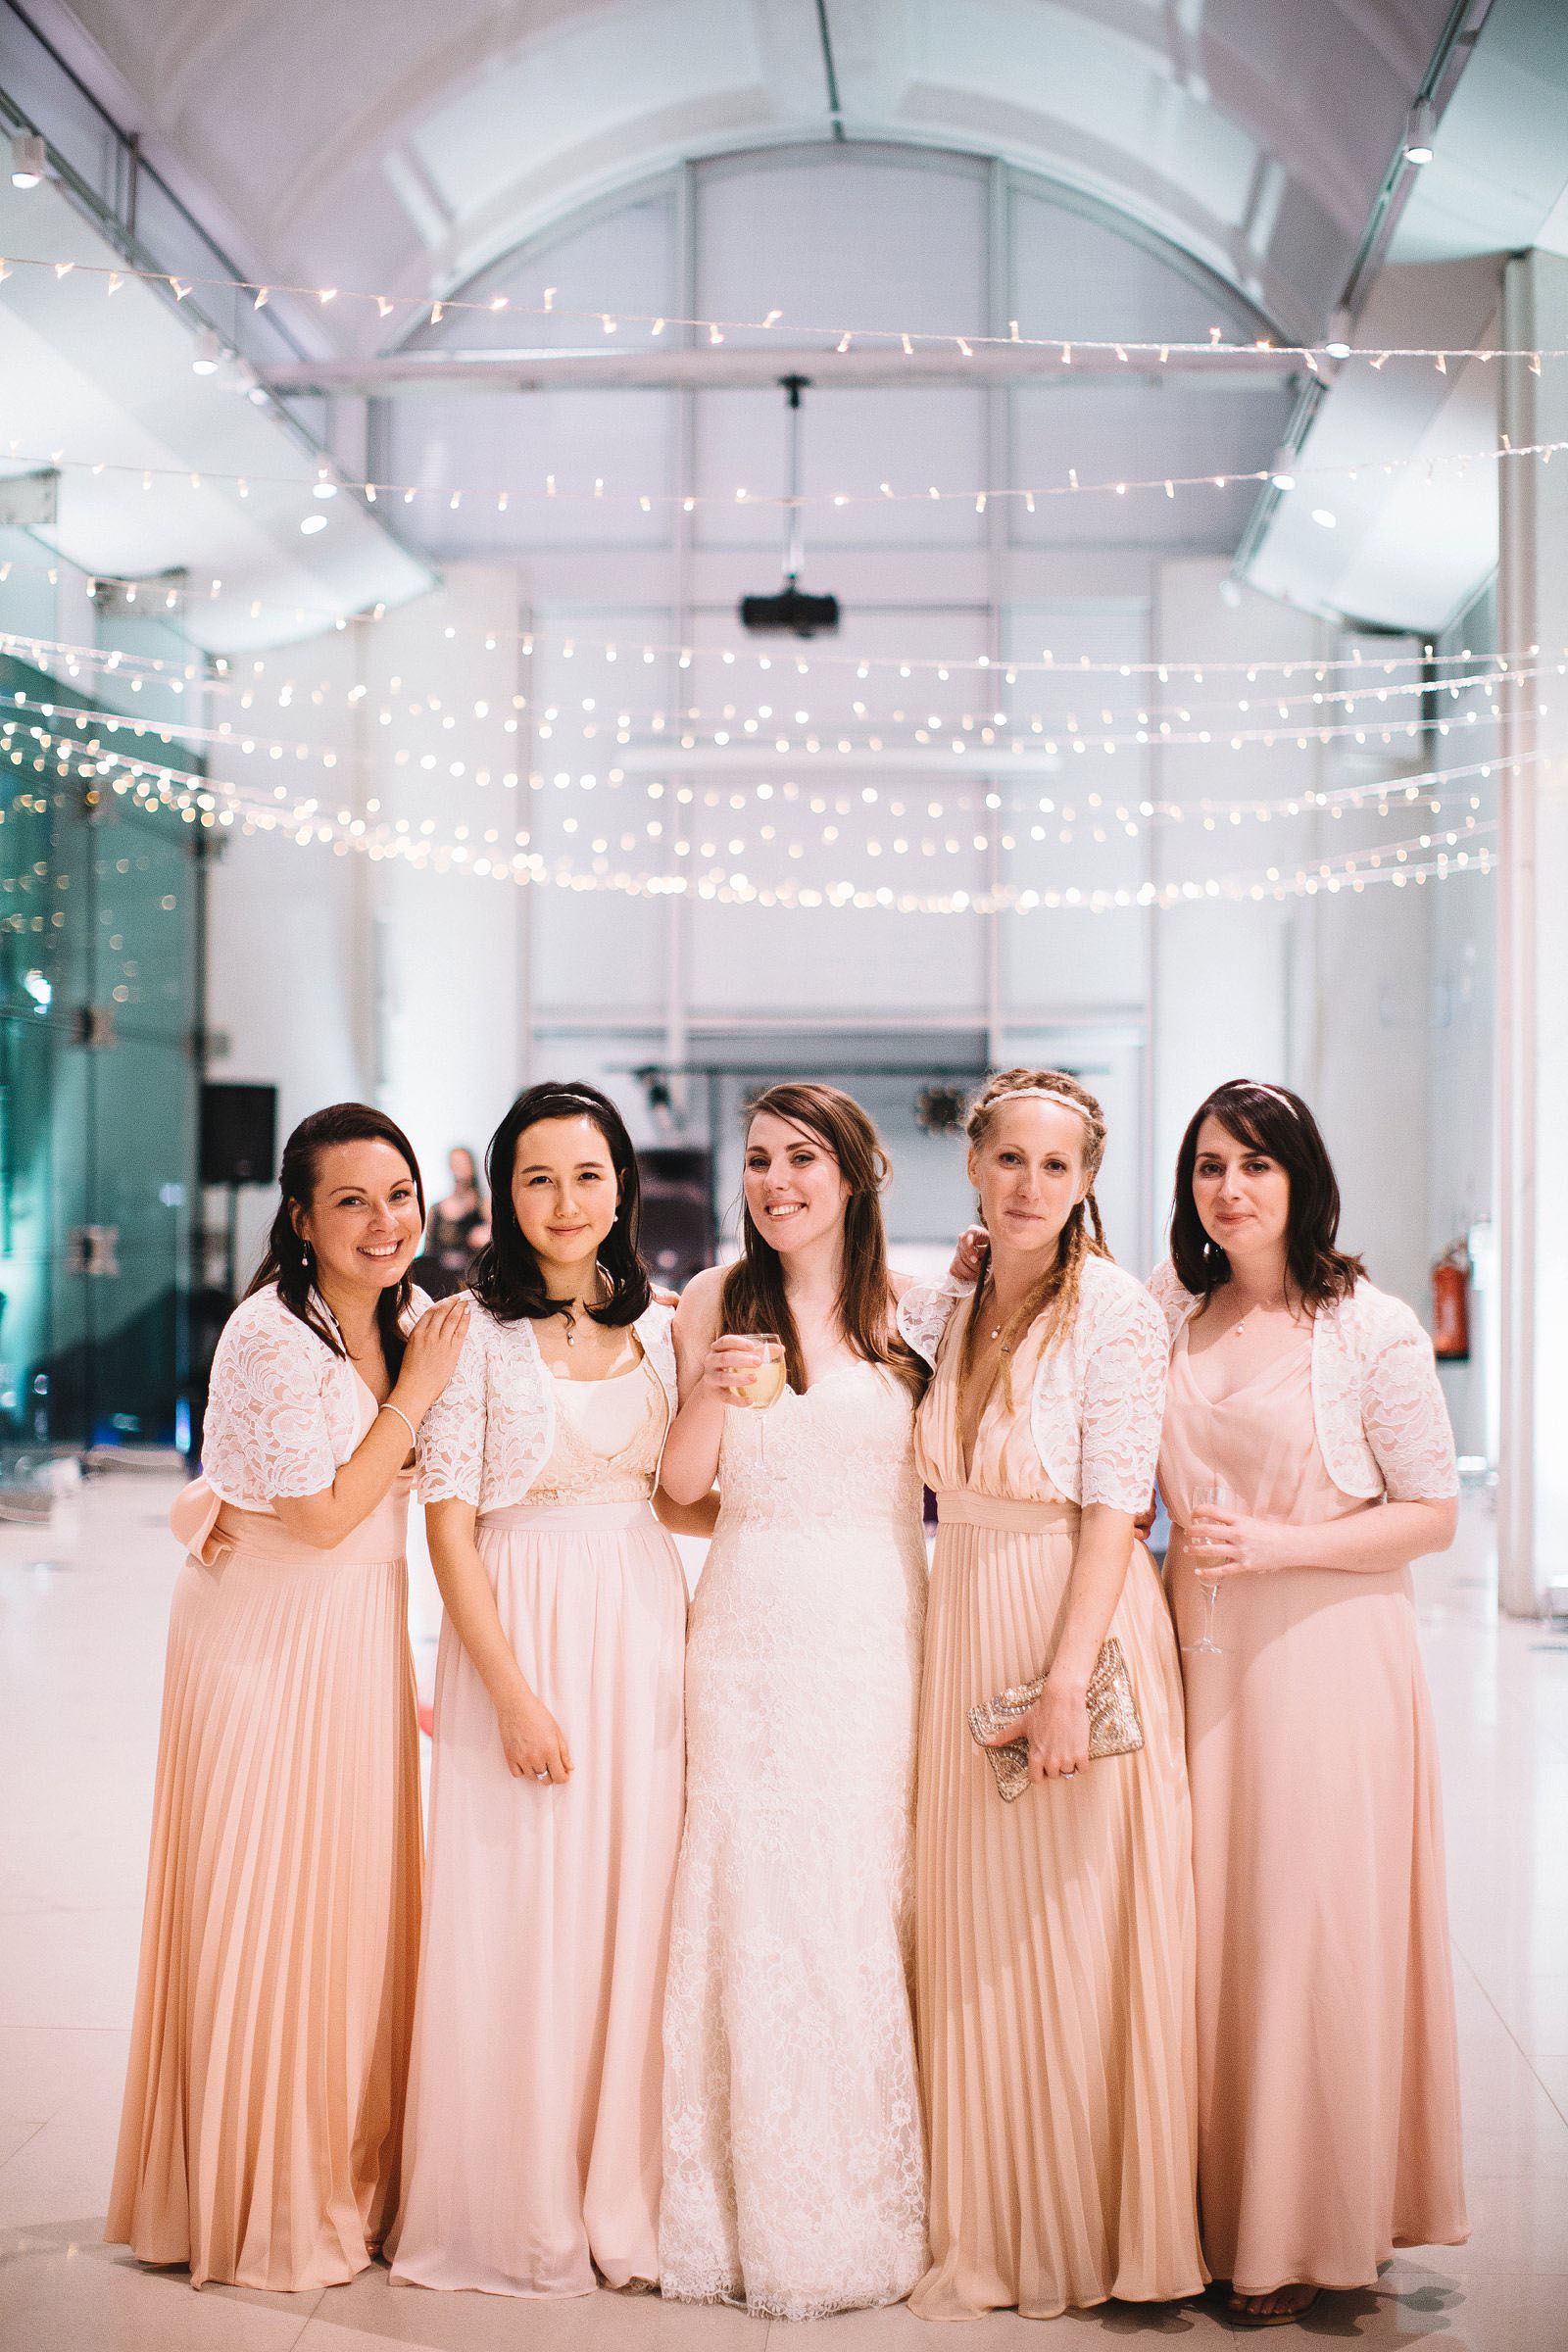 Sheffield bridesmaid dresses